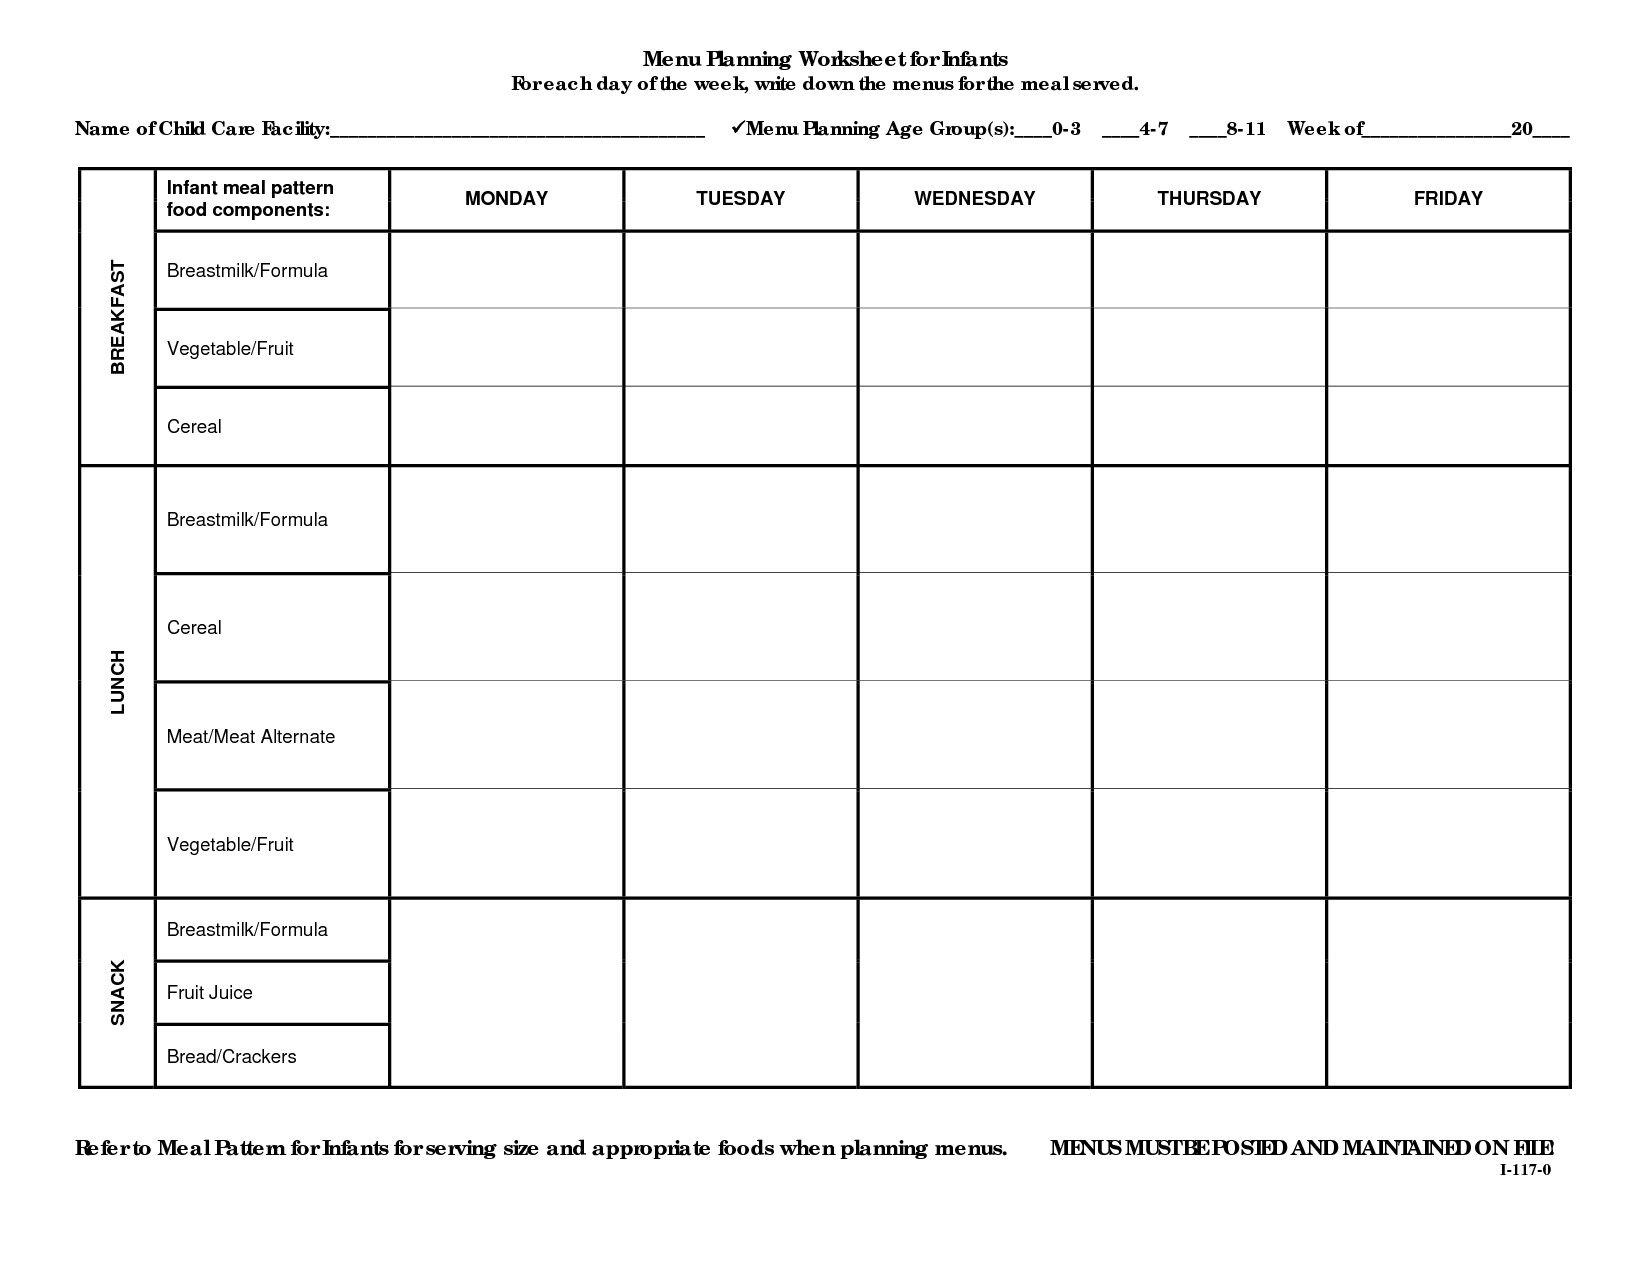 Menu Worksheet Template